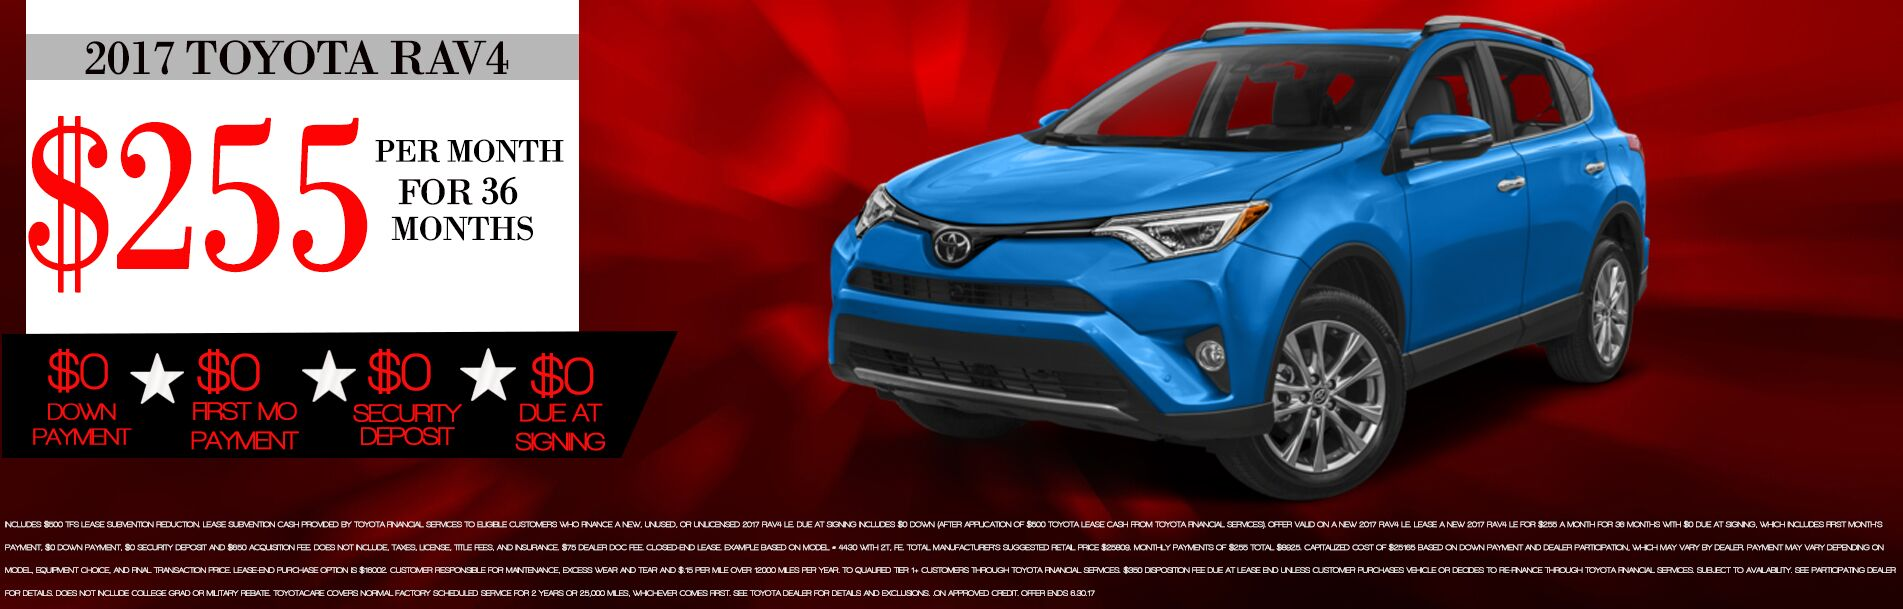 2017 Toyota Rav4 Lease Specials